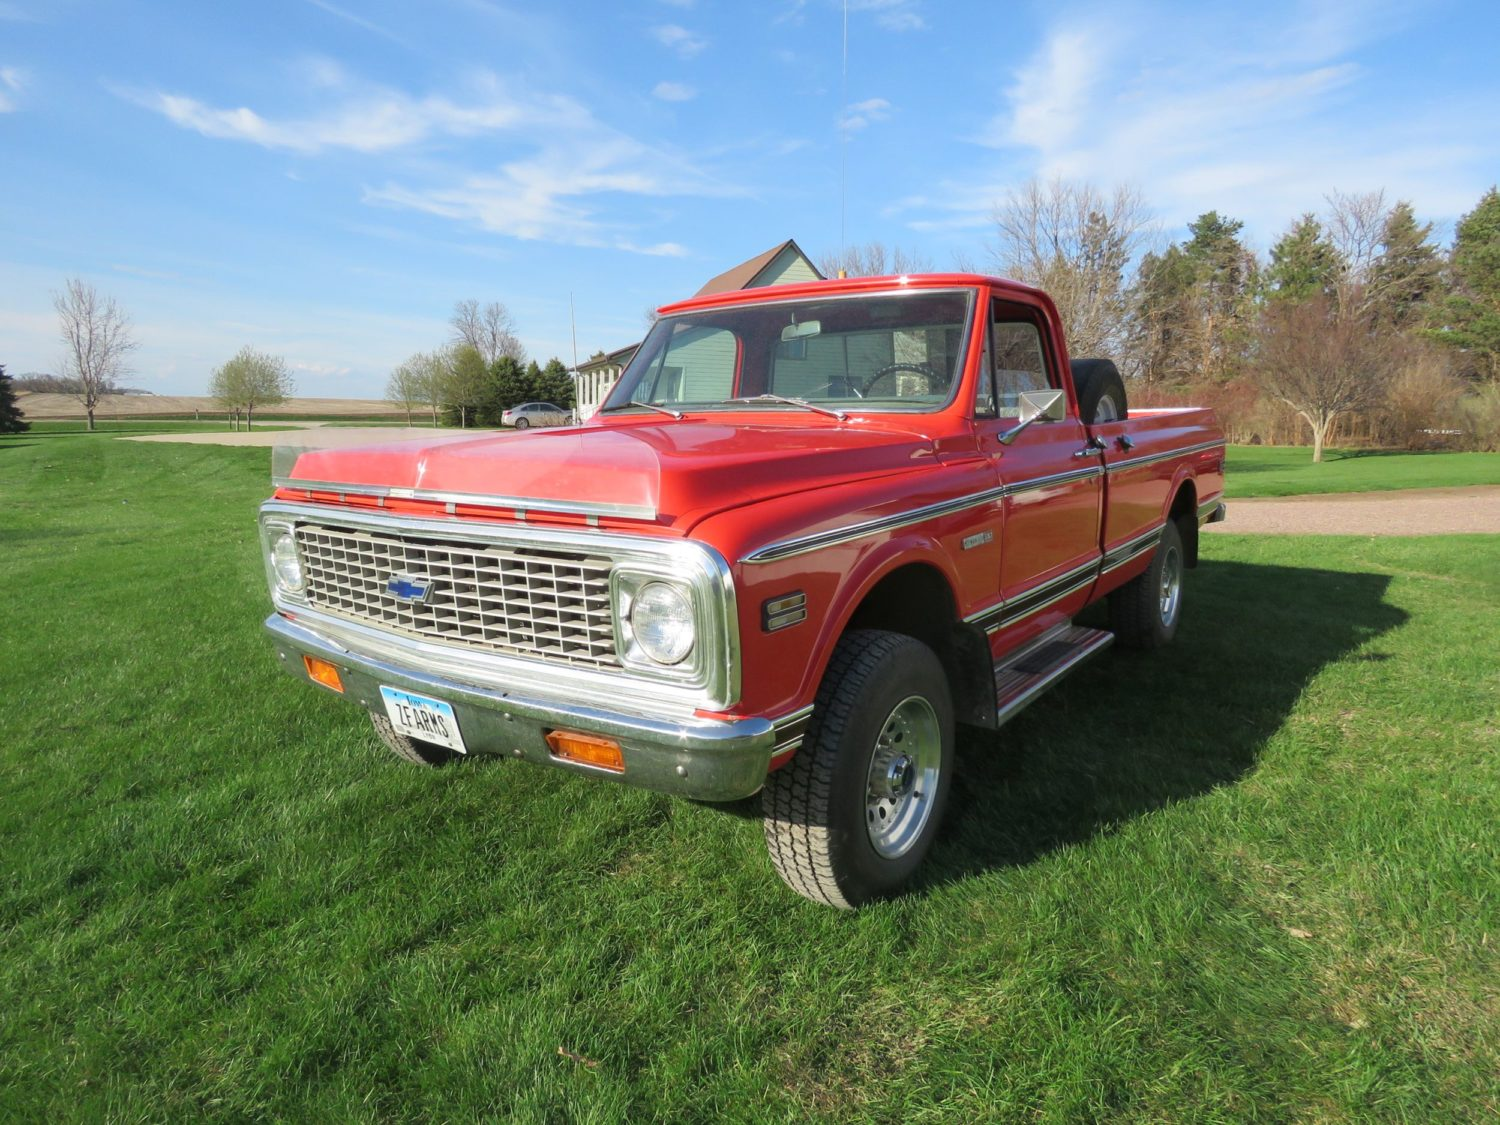 Chevrolet Pickups & C-10/20 Parts, Chevelle, & More Collector Vehicles- The Larry Zuraff Collection - image 1